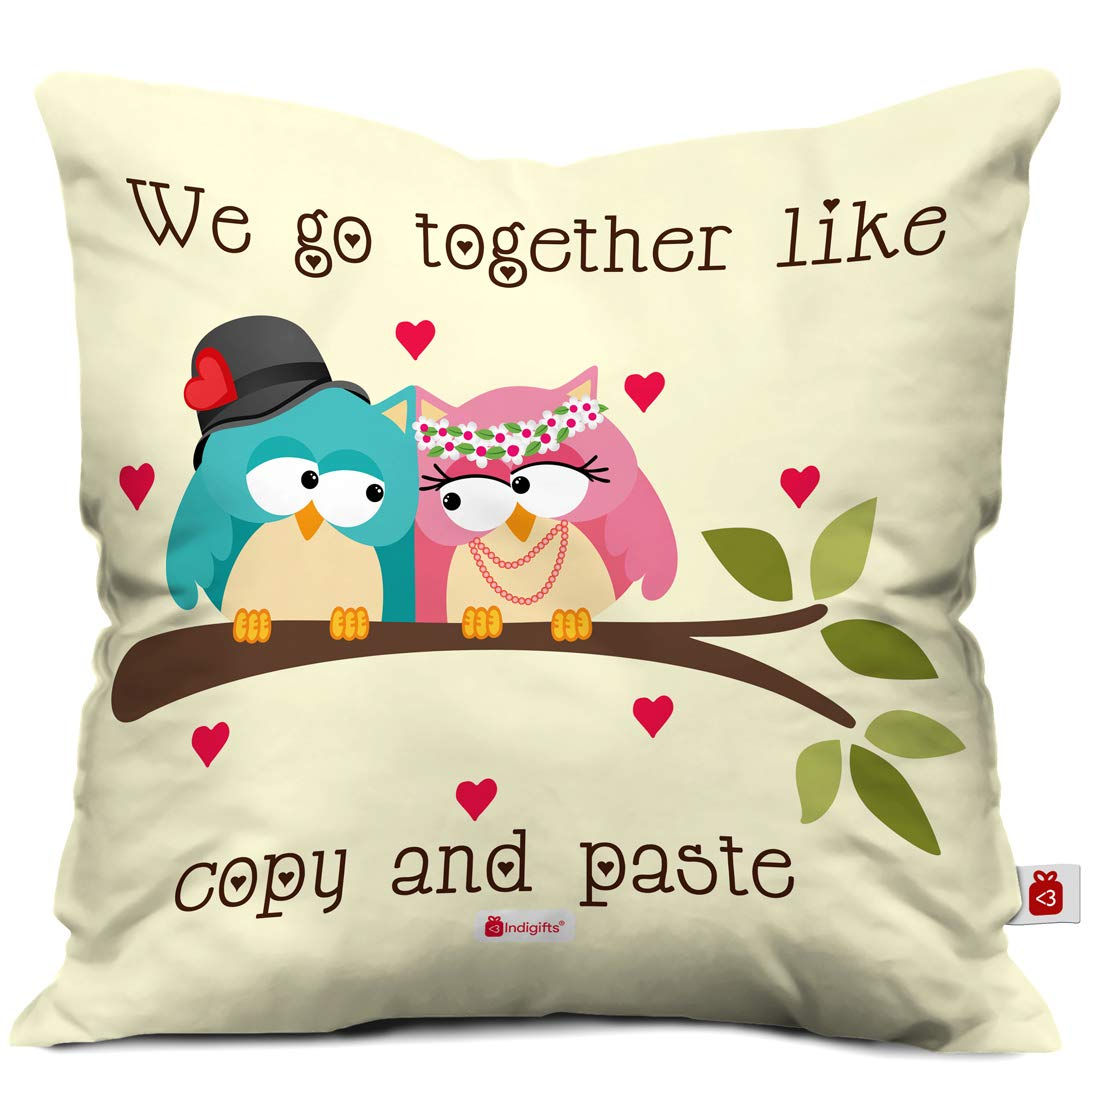 Buy Cushions Online with love sayings